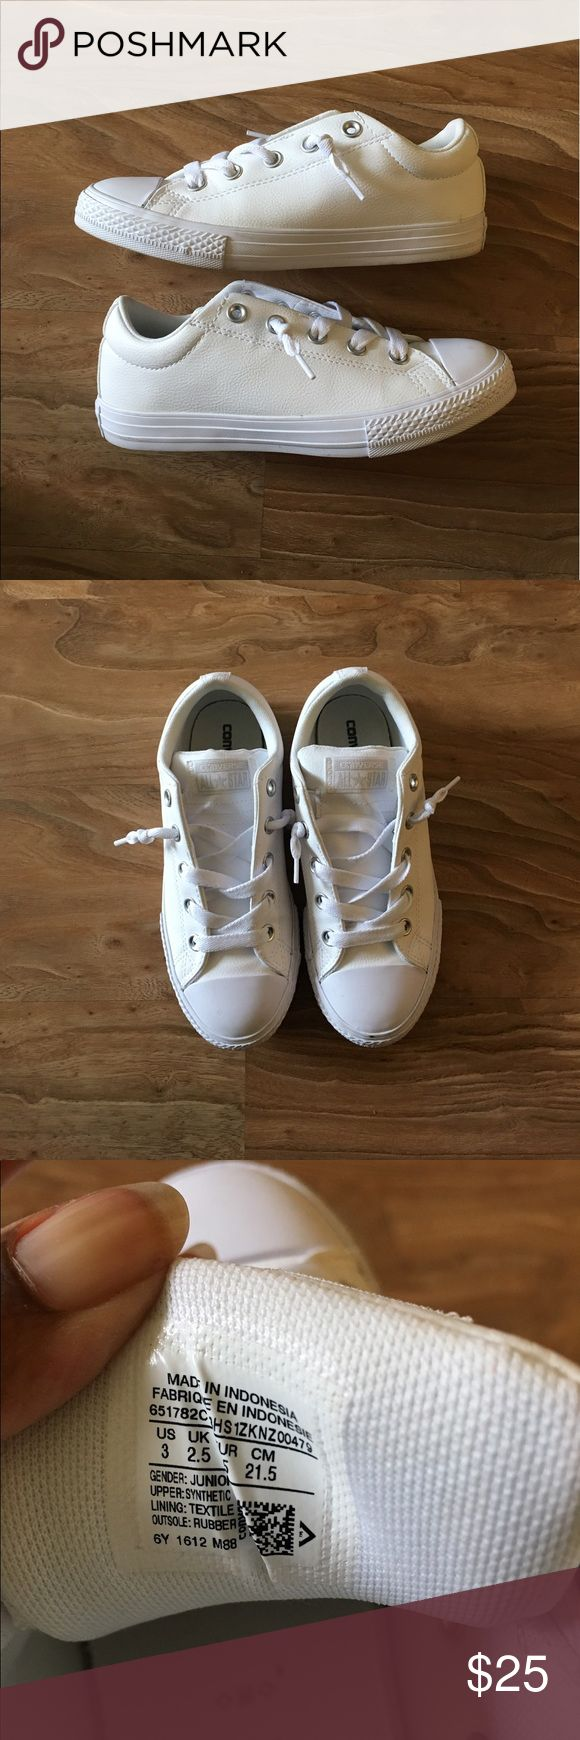 ALL WHITE LEATHER MATERIAL CONVERSE Another gem! Pleather material and no scuffs. The tongue is thicker than regular converse but still a classic. Fits women's size 6! Converse Shoes Sneakers